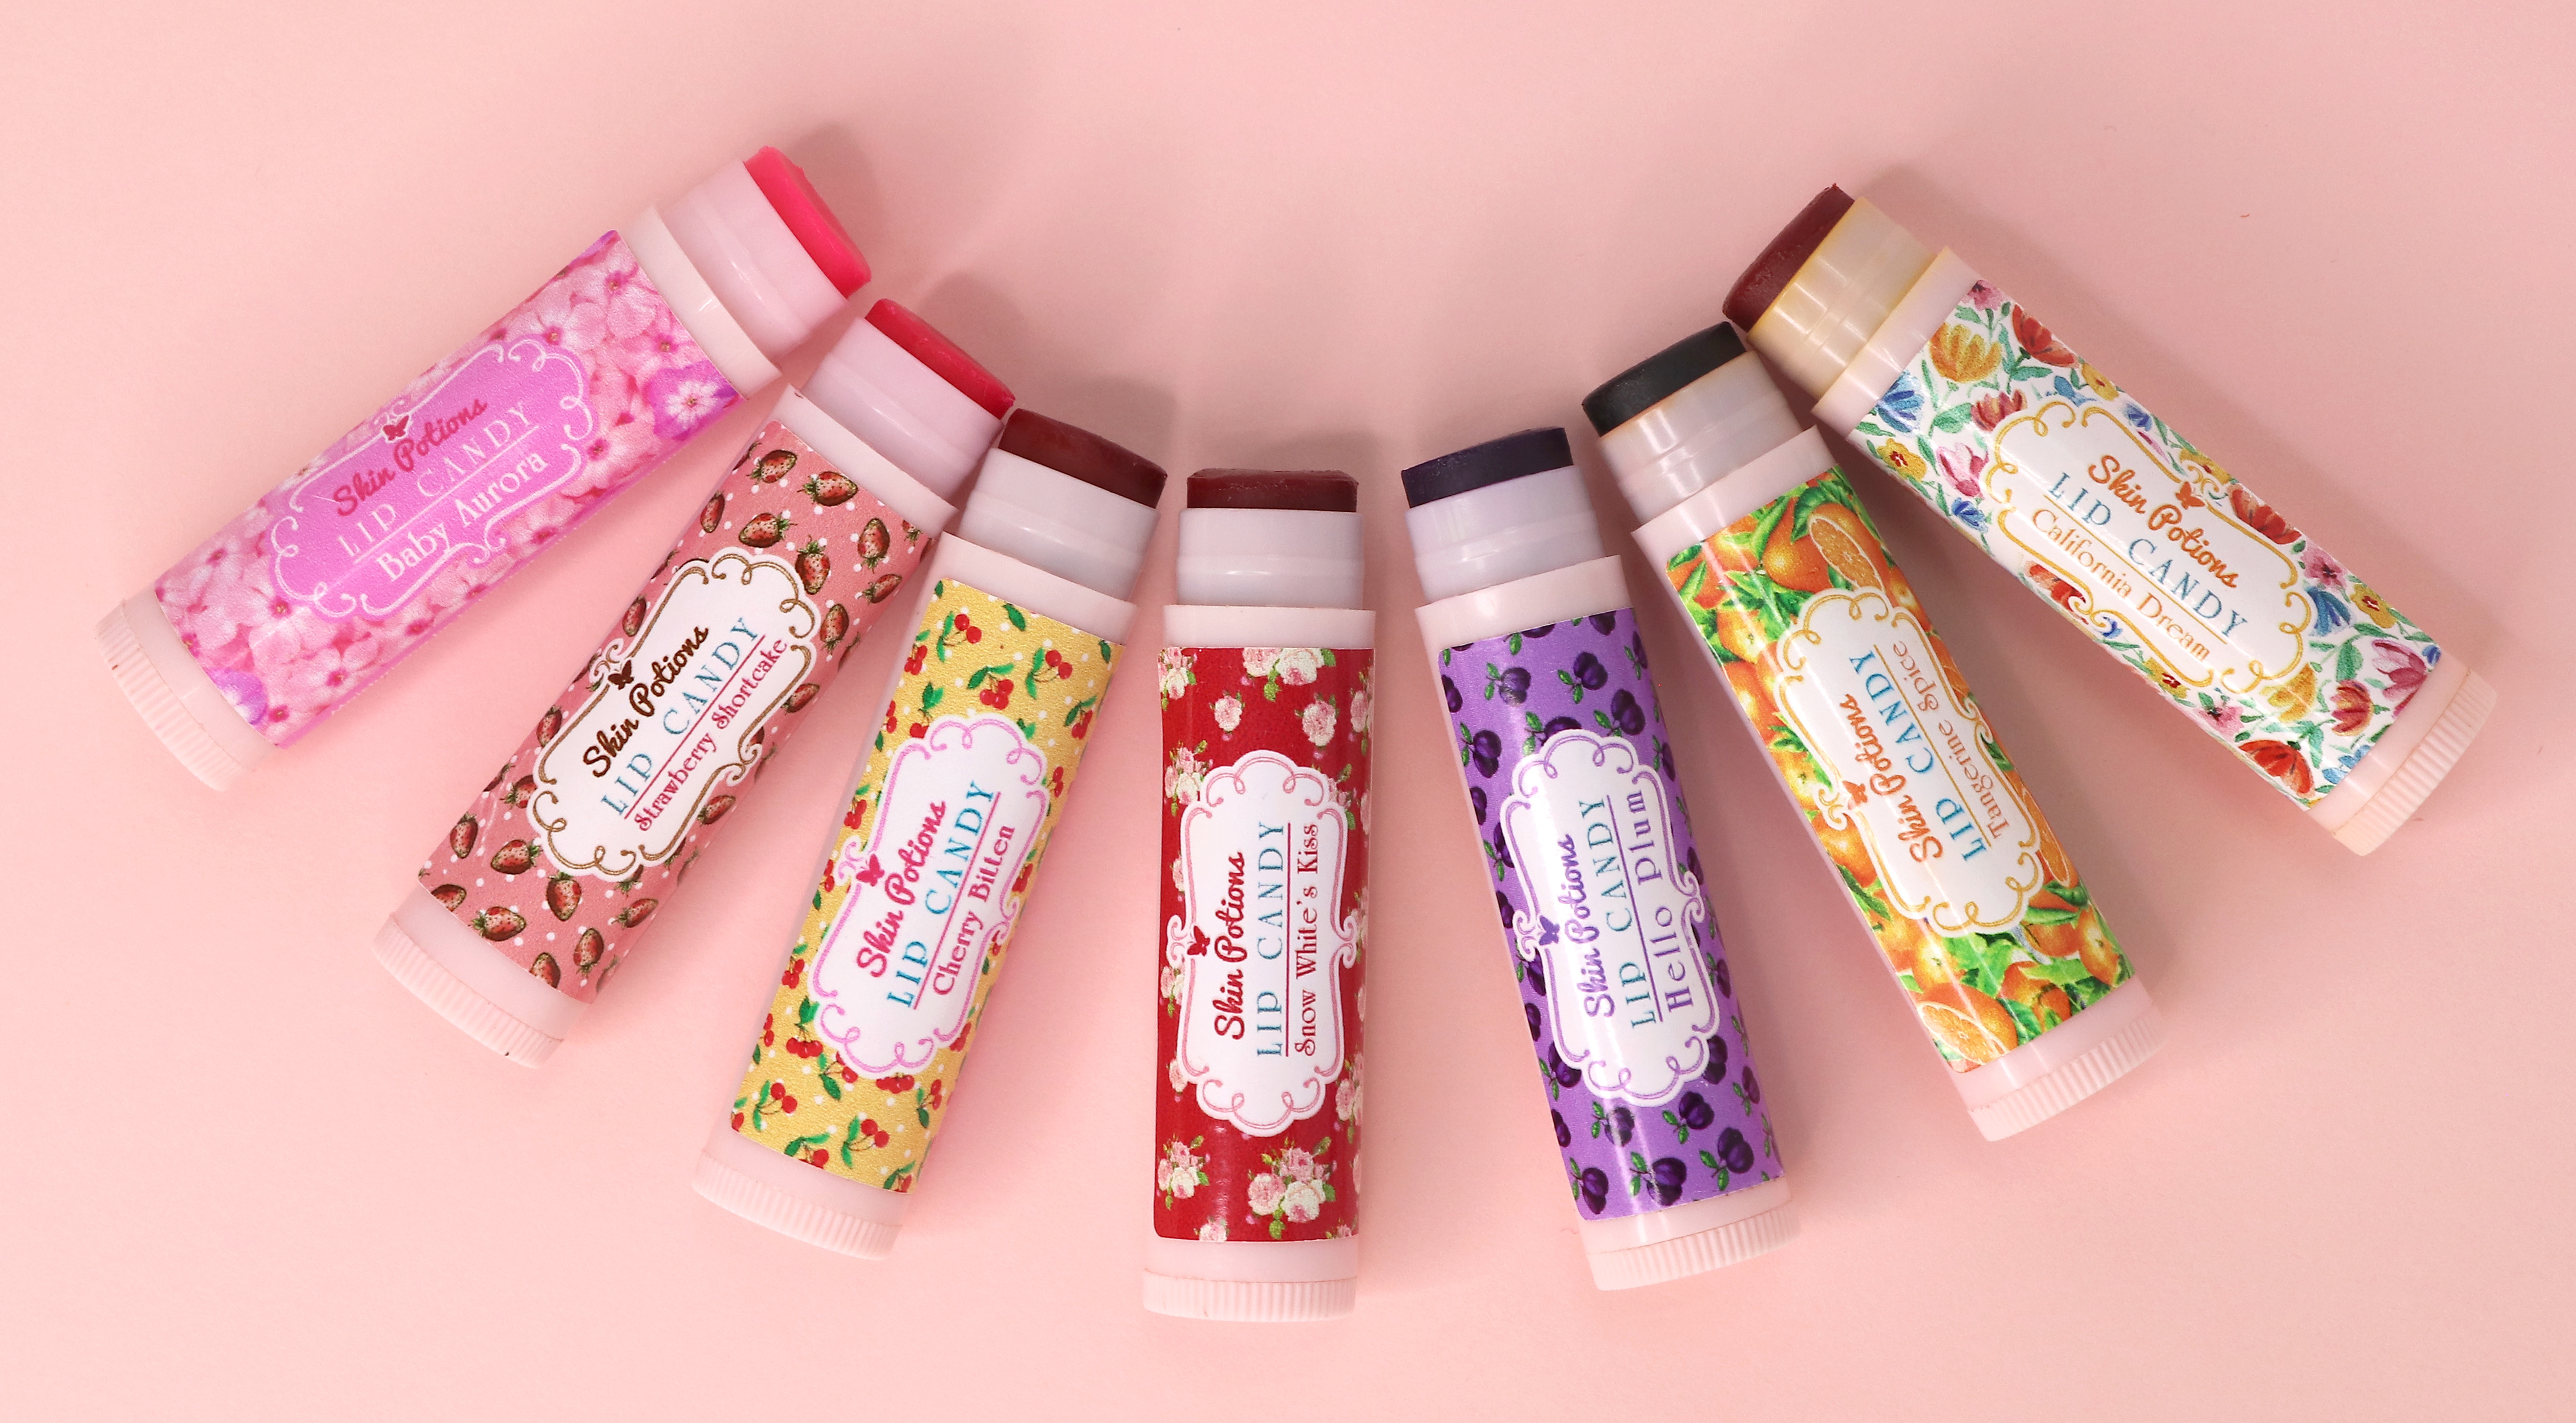 Watch These Candy Colored Lip Balms Are Only P180 Bloom Kiehls Baby Balm If Were Talking Color And Consistency Skinpotions Is As Sweet Its Name Suggests This Stuff Pigmenteda Single Swipe Packs A Serious